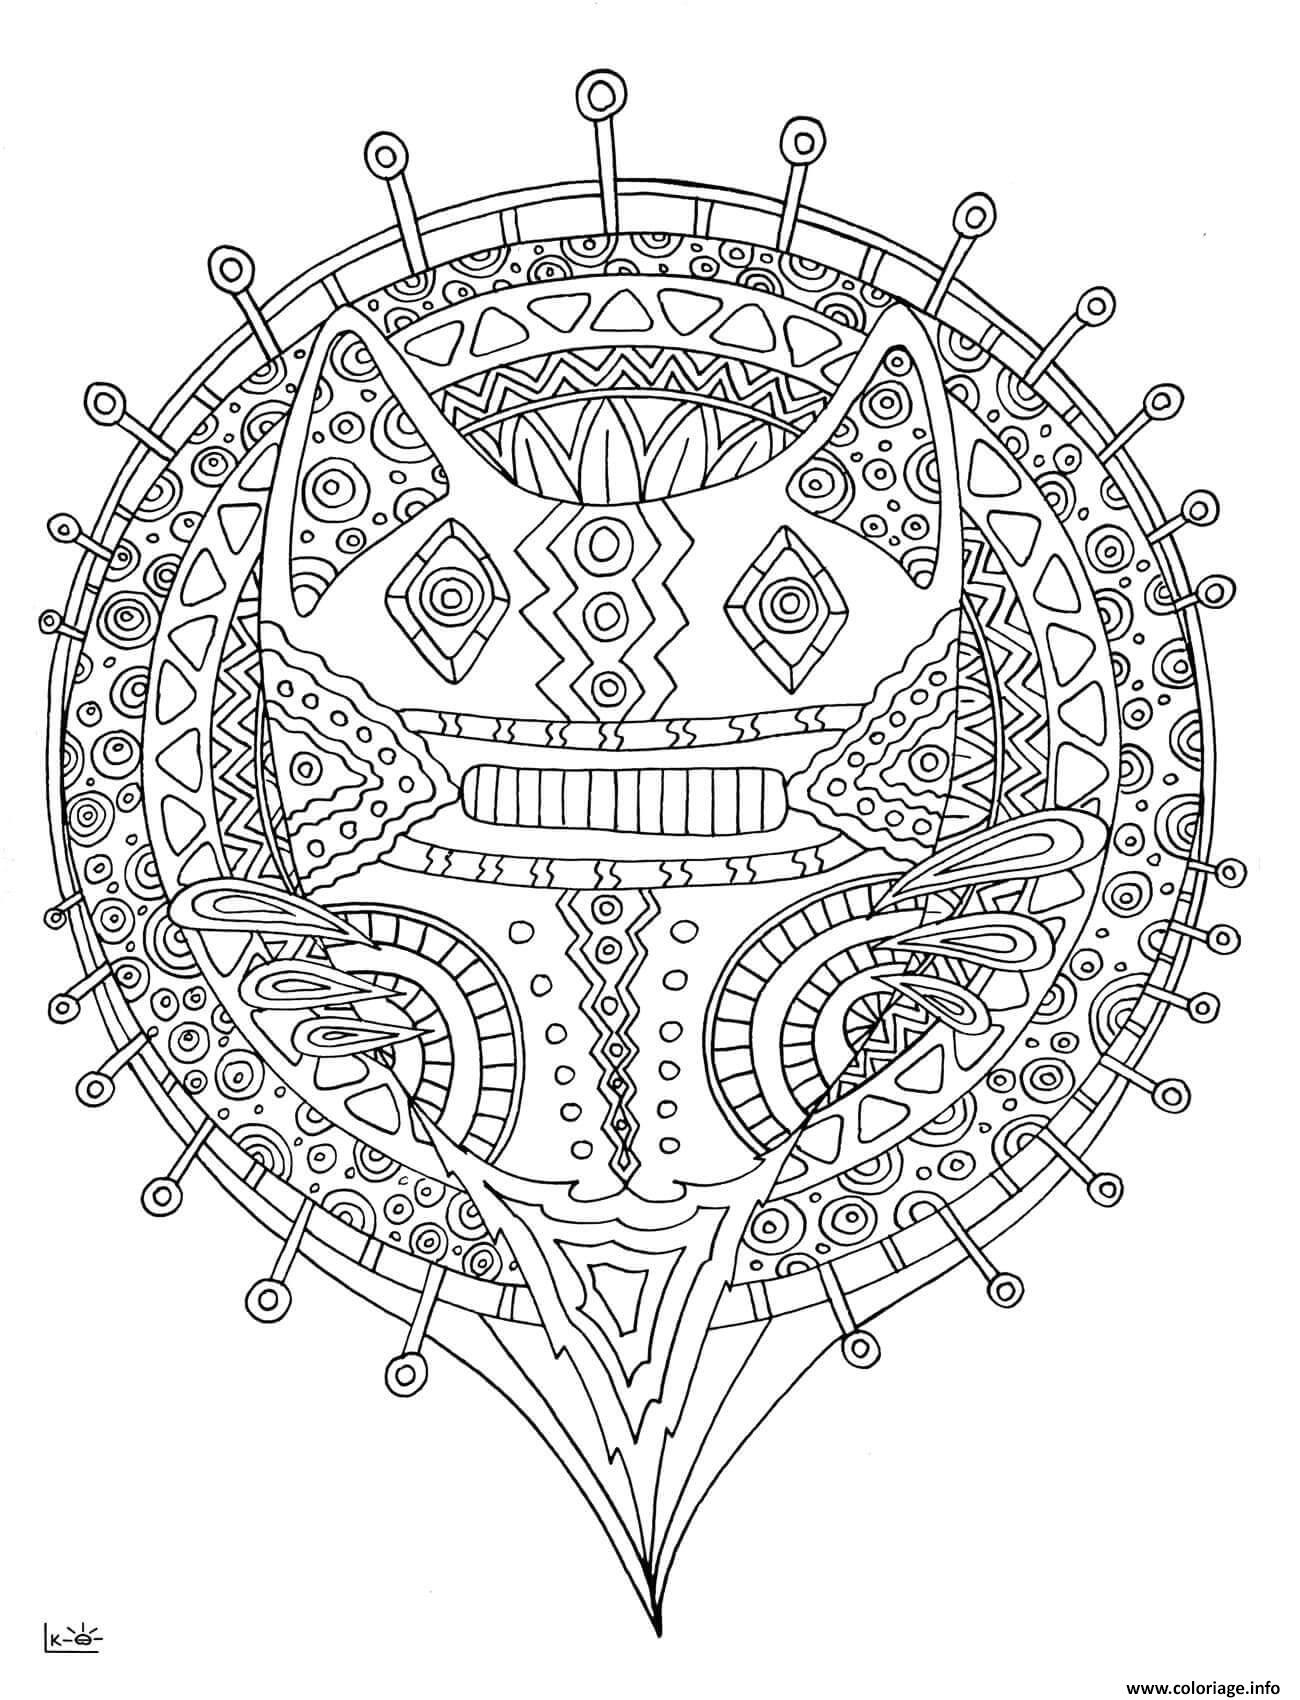 Coloriage Forest Cat With Tribal Pattern Adulte Dessin à Imprimer